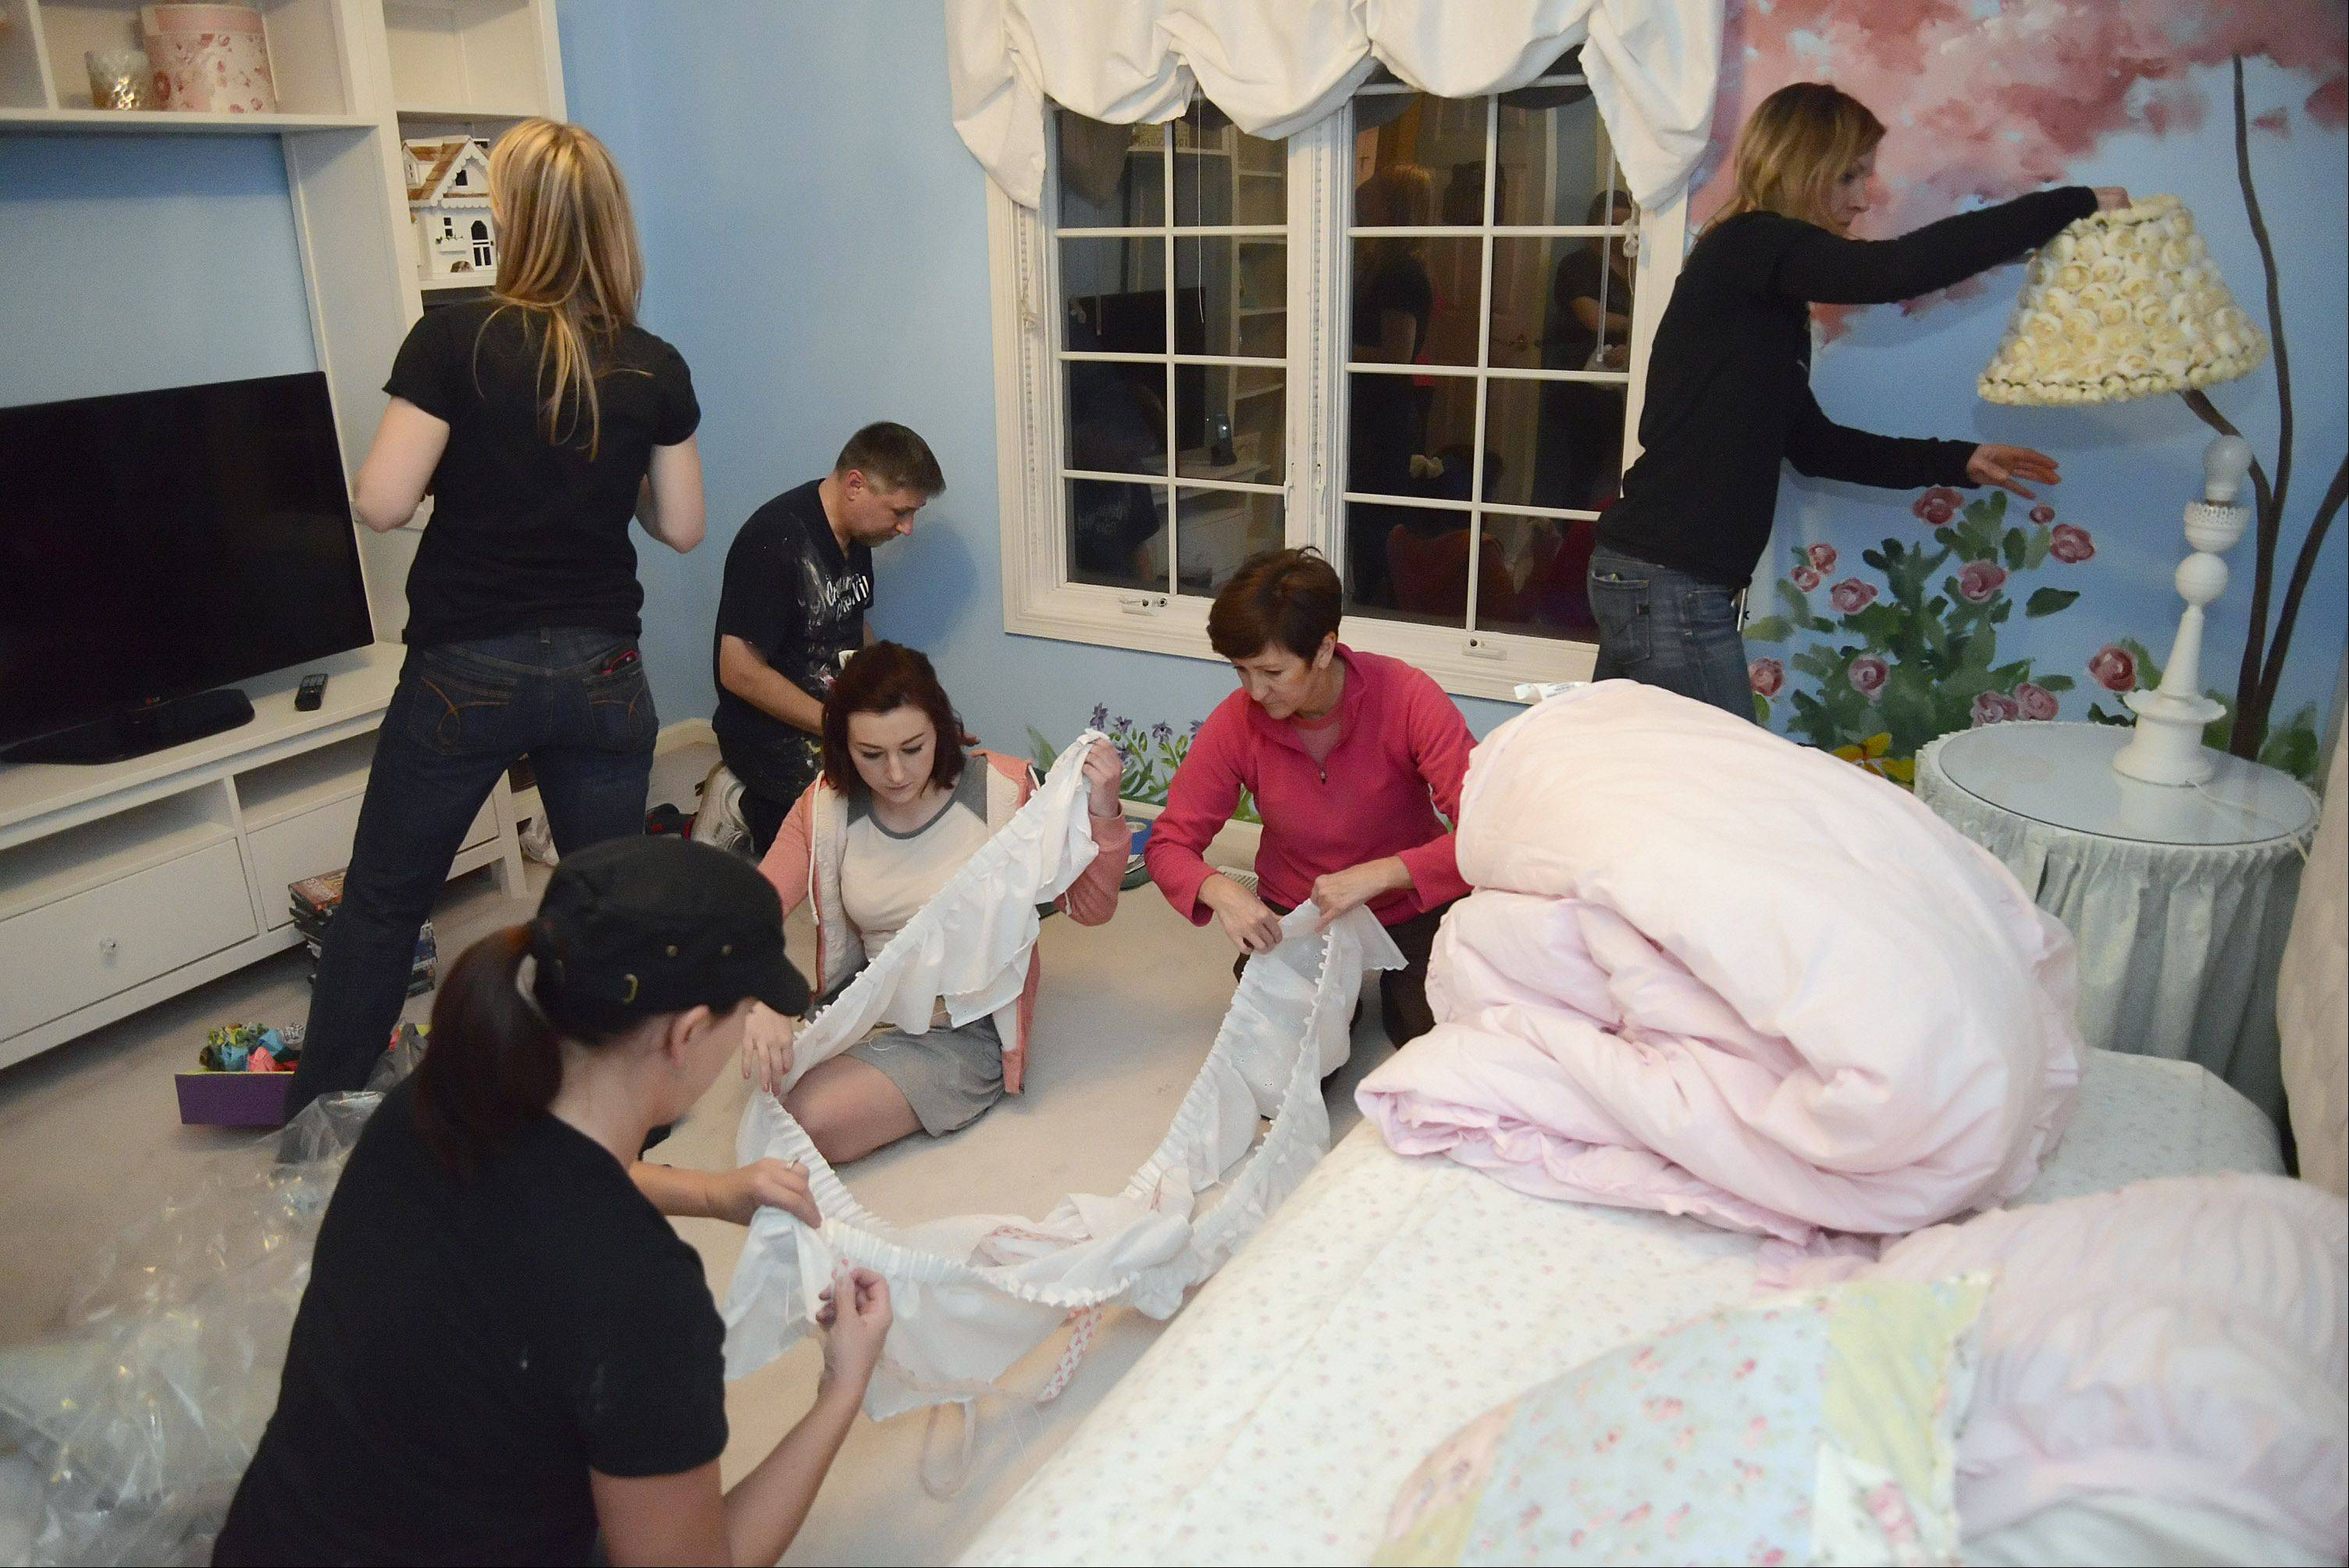 The Special Spaces Chicagoland team and volunteers pull together the new bedroom for Catharine Steiner of St. Charles before her arrival Thursday. From left to right, Lori McSpadden, seated, Andrea Schwemin, standing, Genevieve Cipriano and her mother Beth, center, Ken Markiewicz and Kelly Knox. Genevieve, 18, is a cancer survivor and was the recipient of a room makeover in November; she wanted to pay it forward in helping another child.